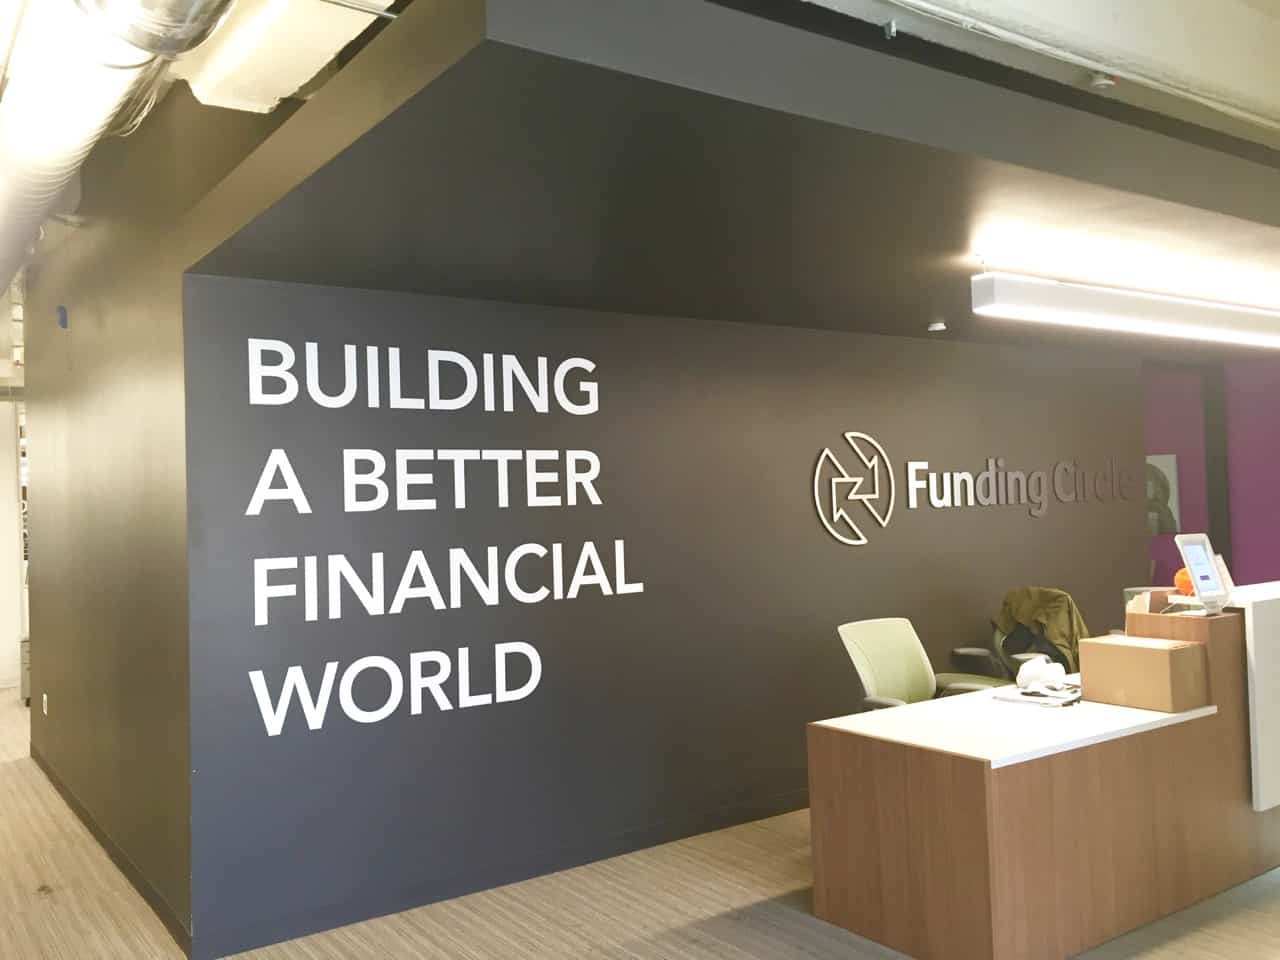 Funding Circle Announces Completion of $198 Million ABS Securitization